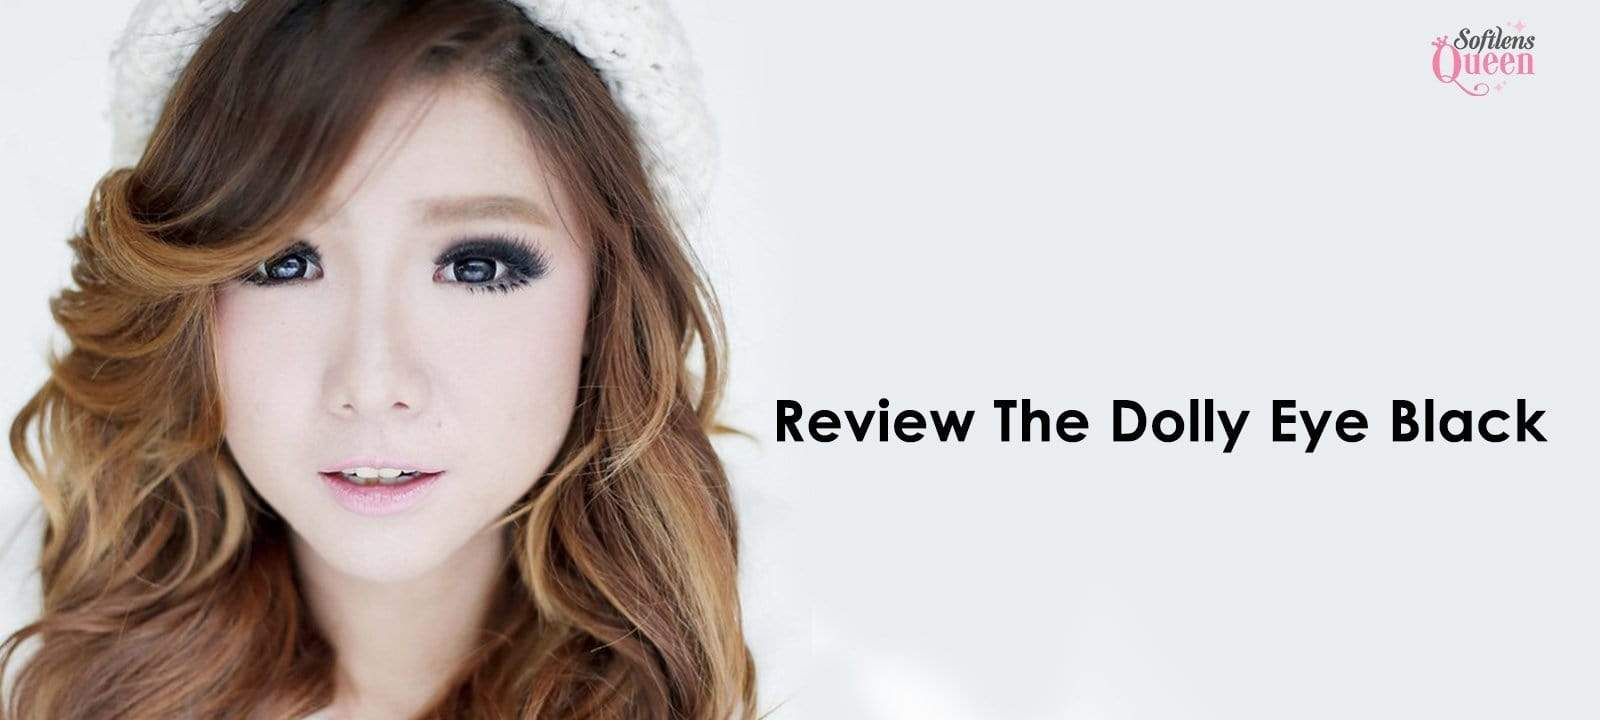 Review the Dolly Eye Black Colored Contact Lens : Make Our Eyes Look like a Doll